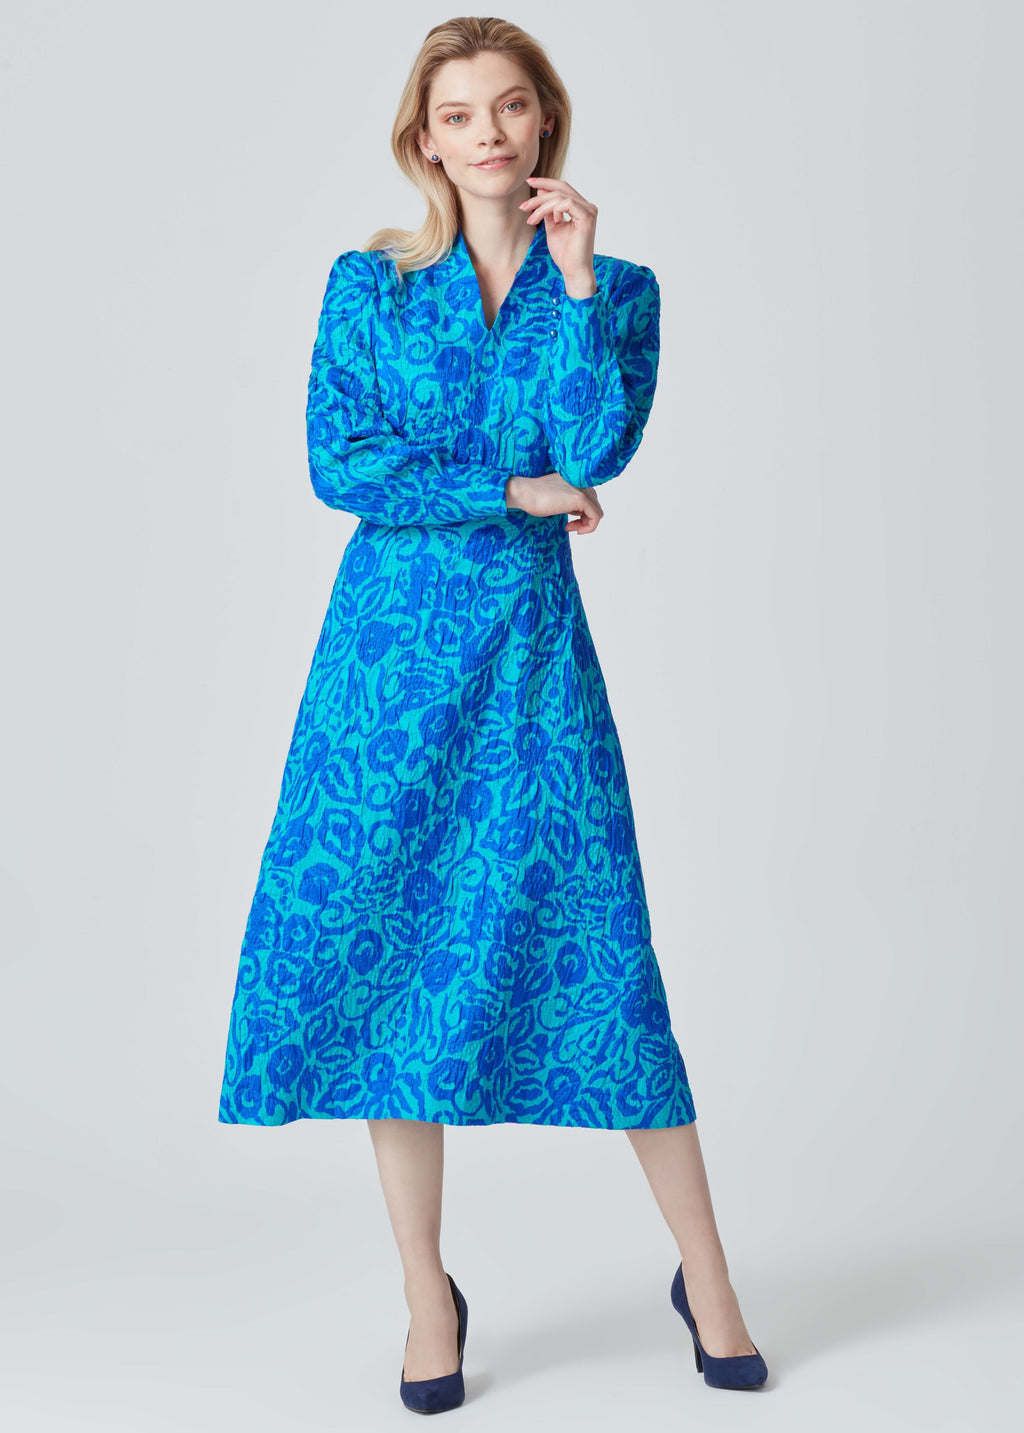 Smart Dress in Silk/Wool Printed Matelassé - Sophie